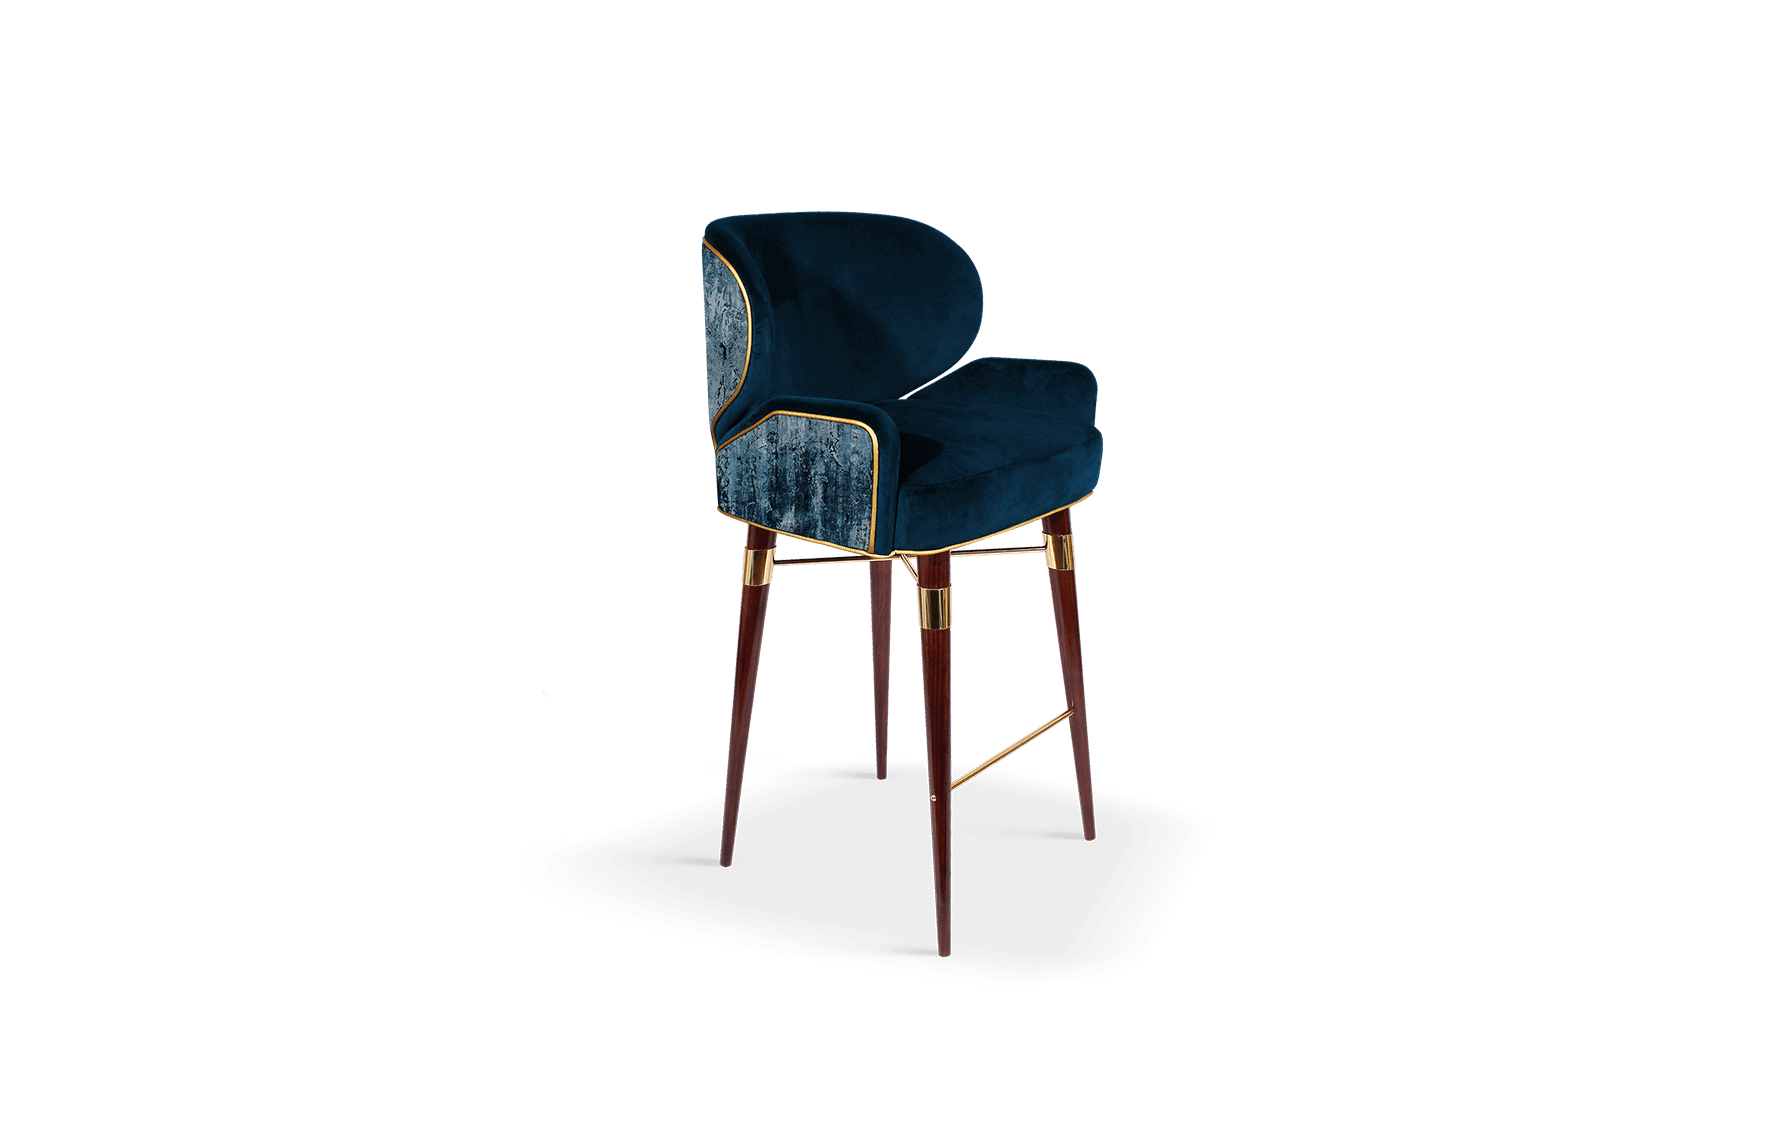 Louis I Mid-Century Modern Bar Chair in blue cotton velted and gold pipping